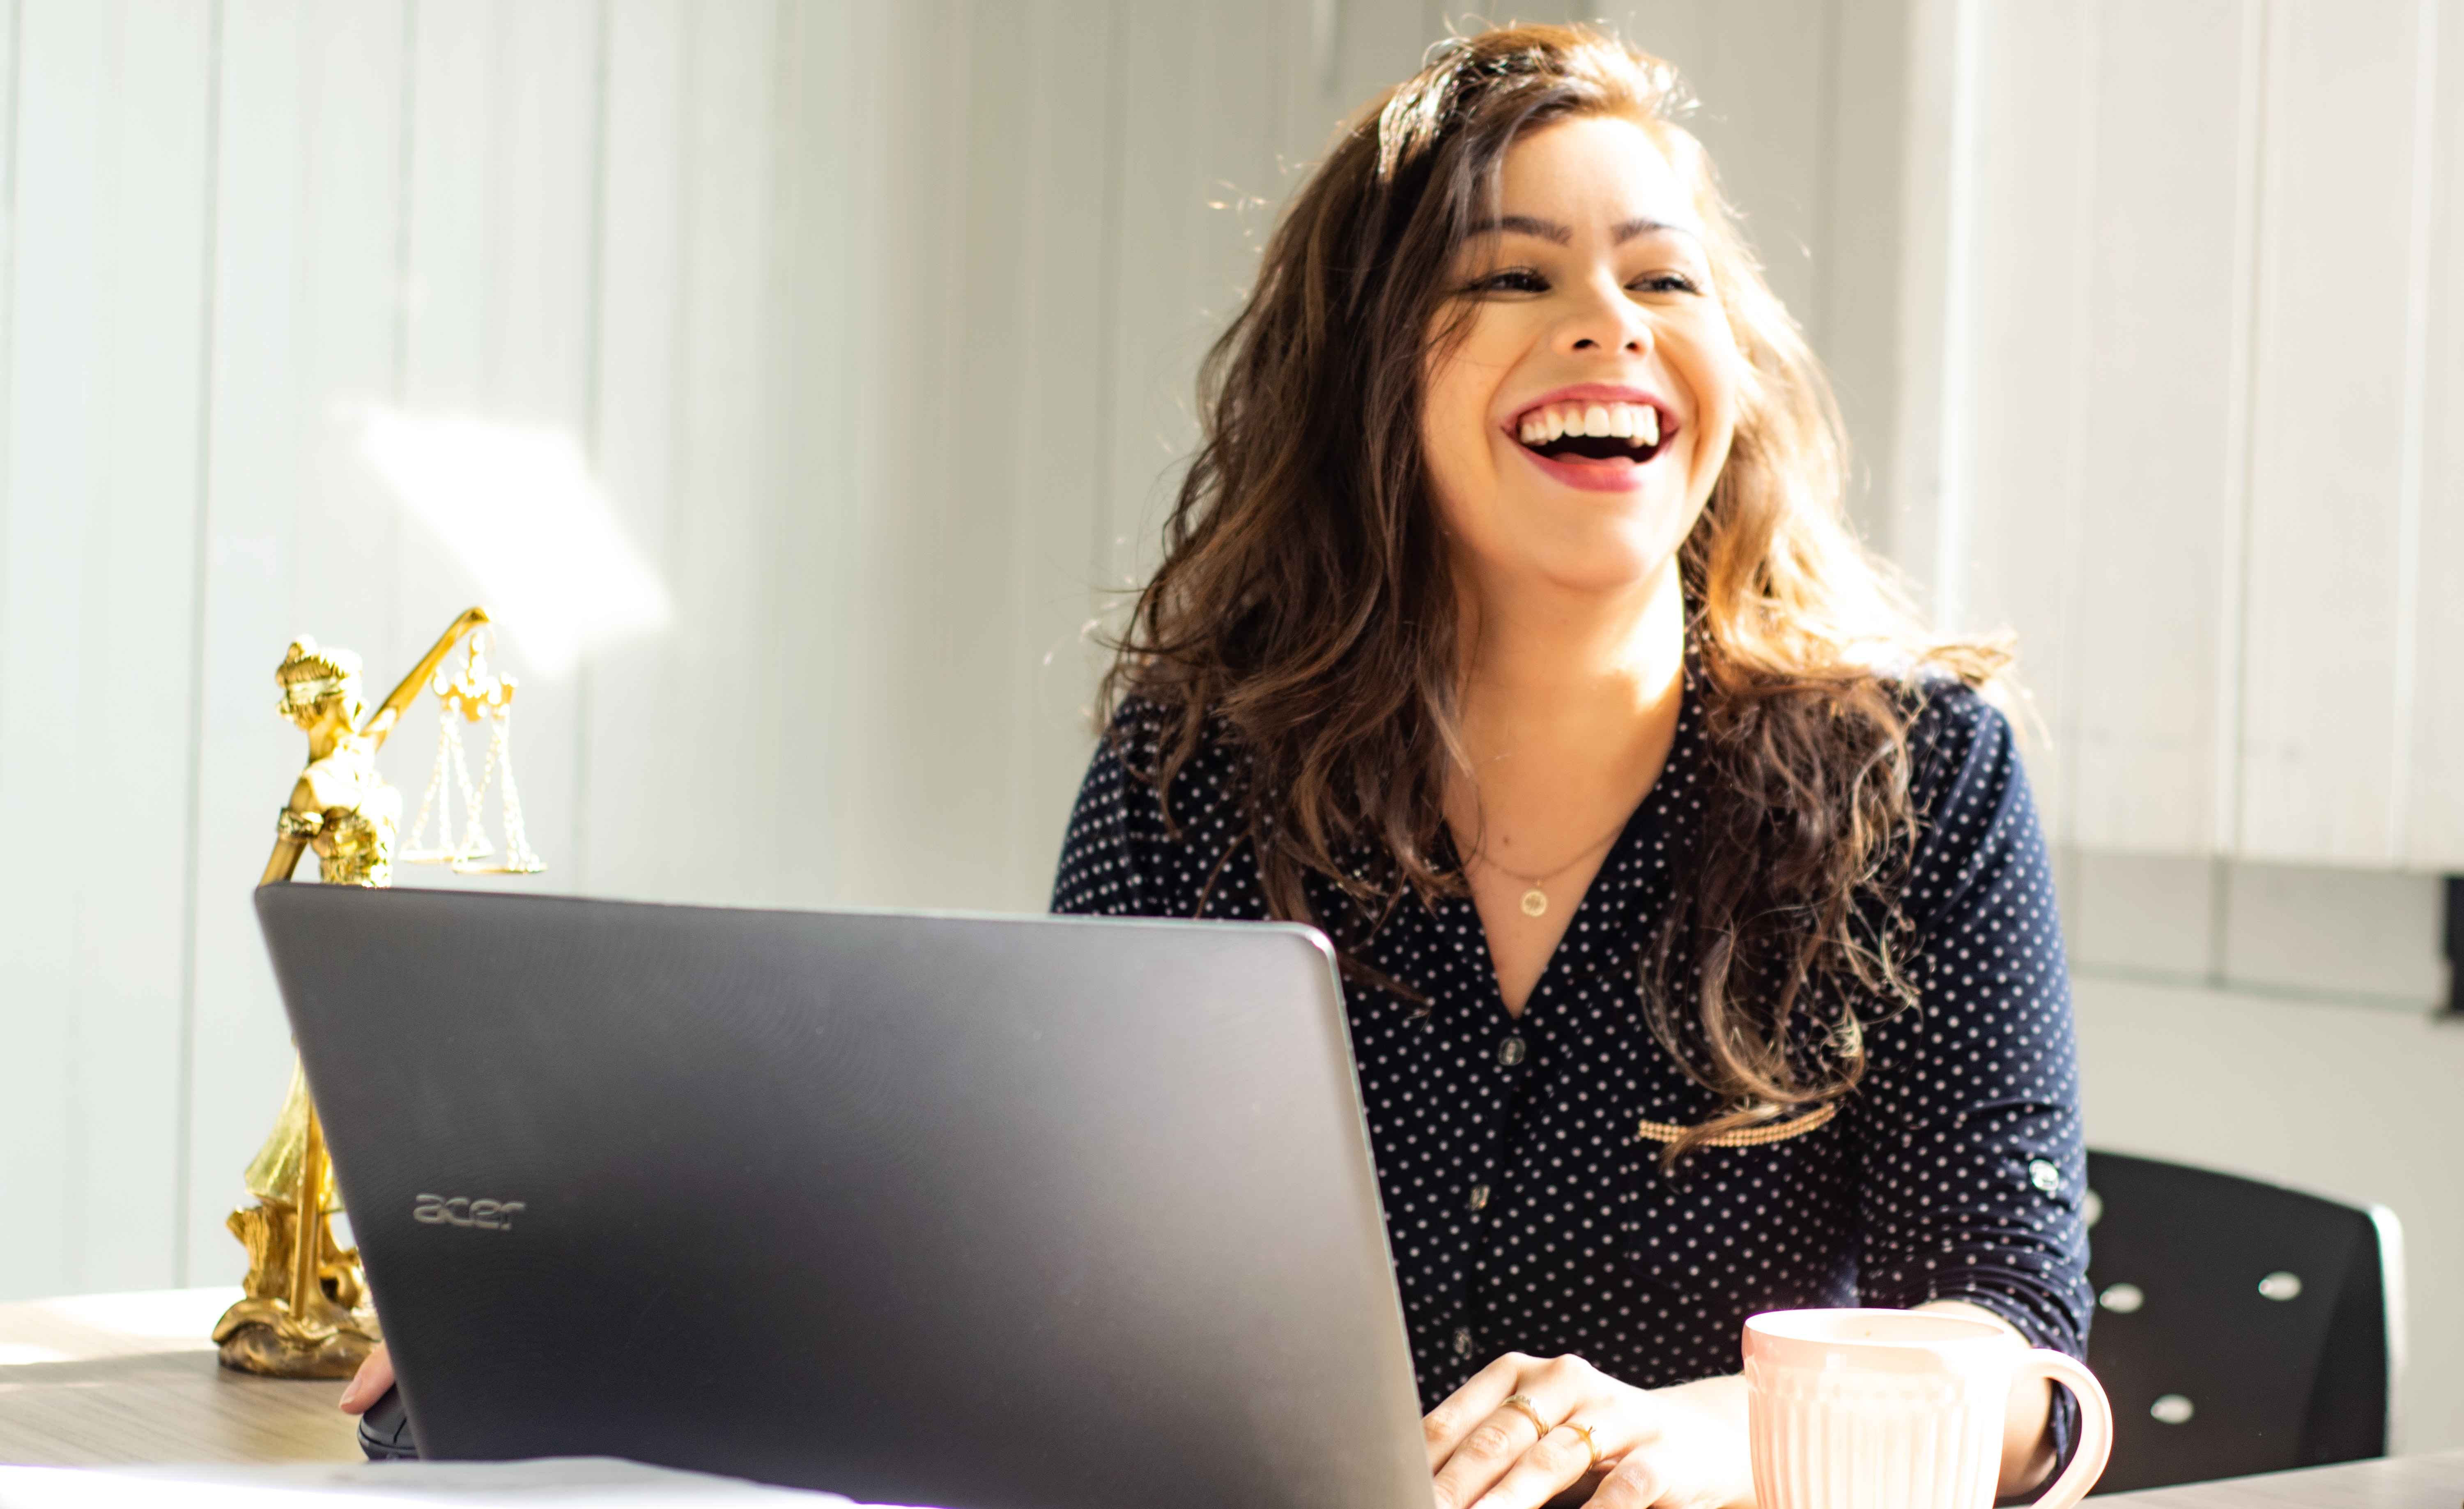 A woman laughs while sitting at an elegant desk with a laptop open on it.